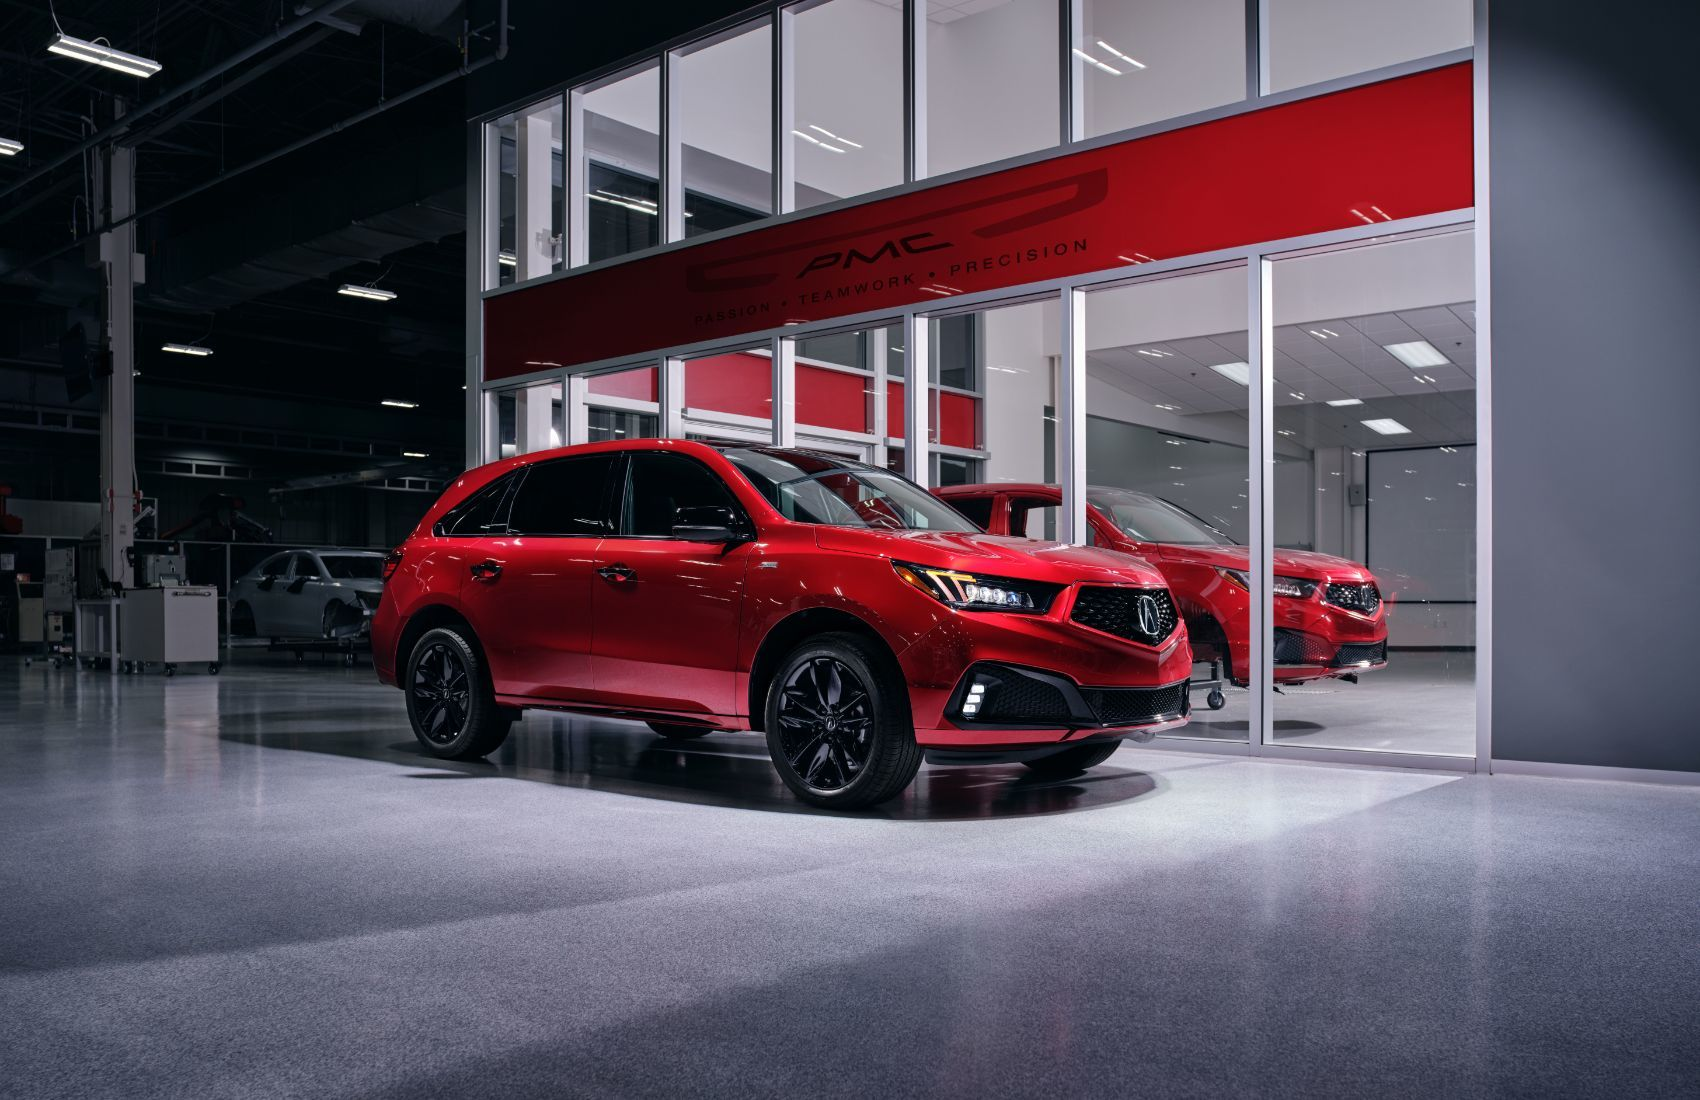 2020 Acura MDX PMC Edition 1